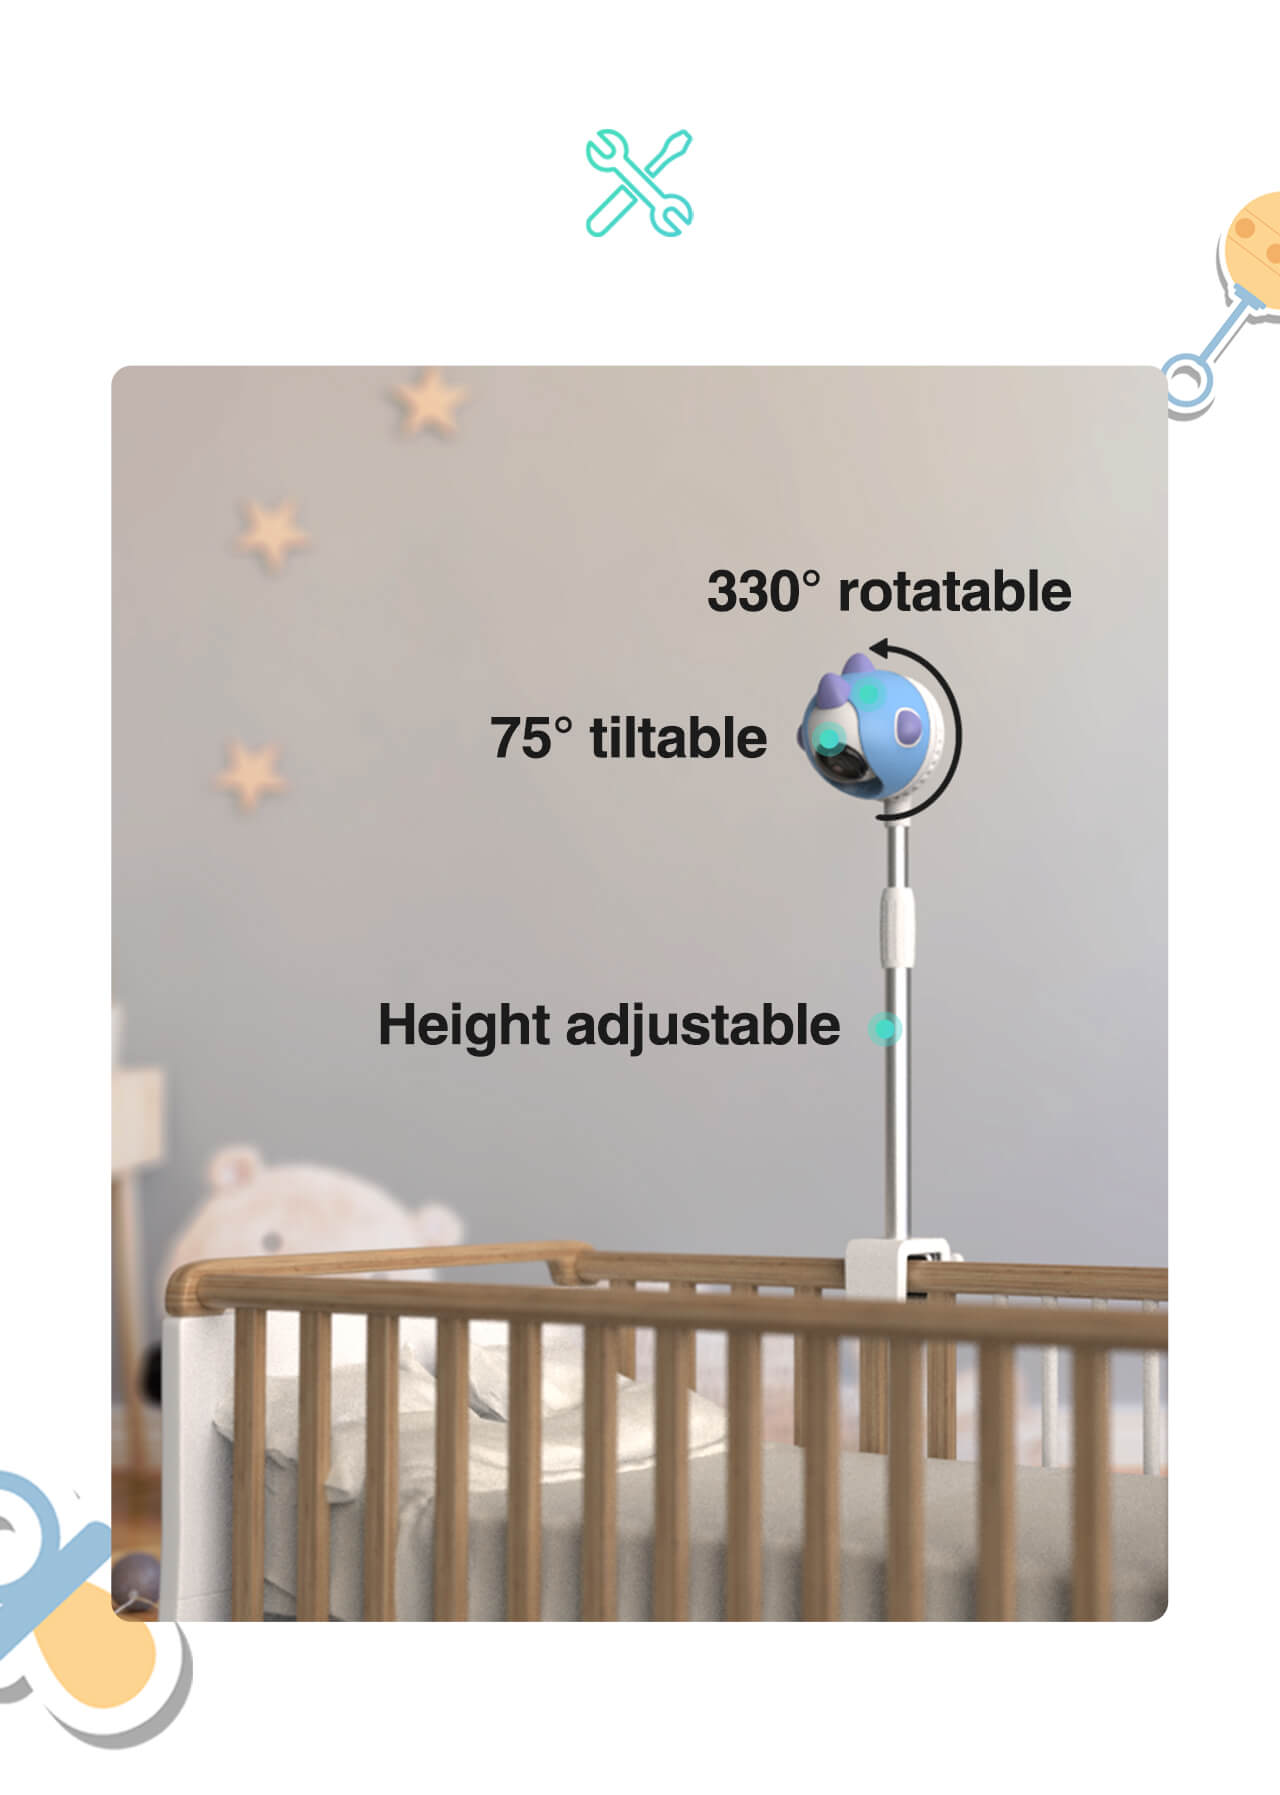 Mount the baby monitor to the crib holder provided